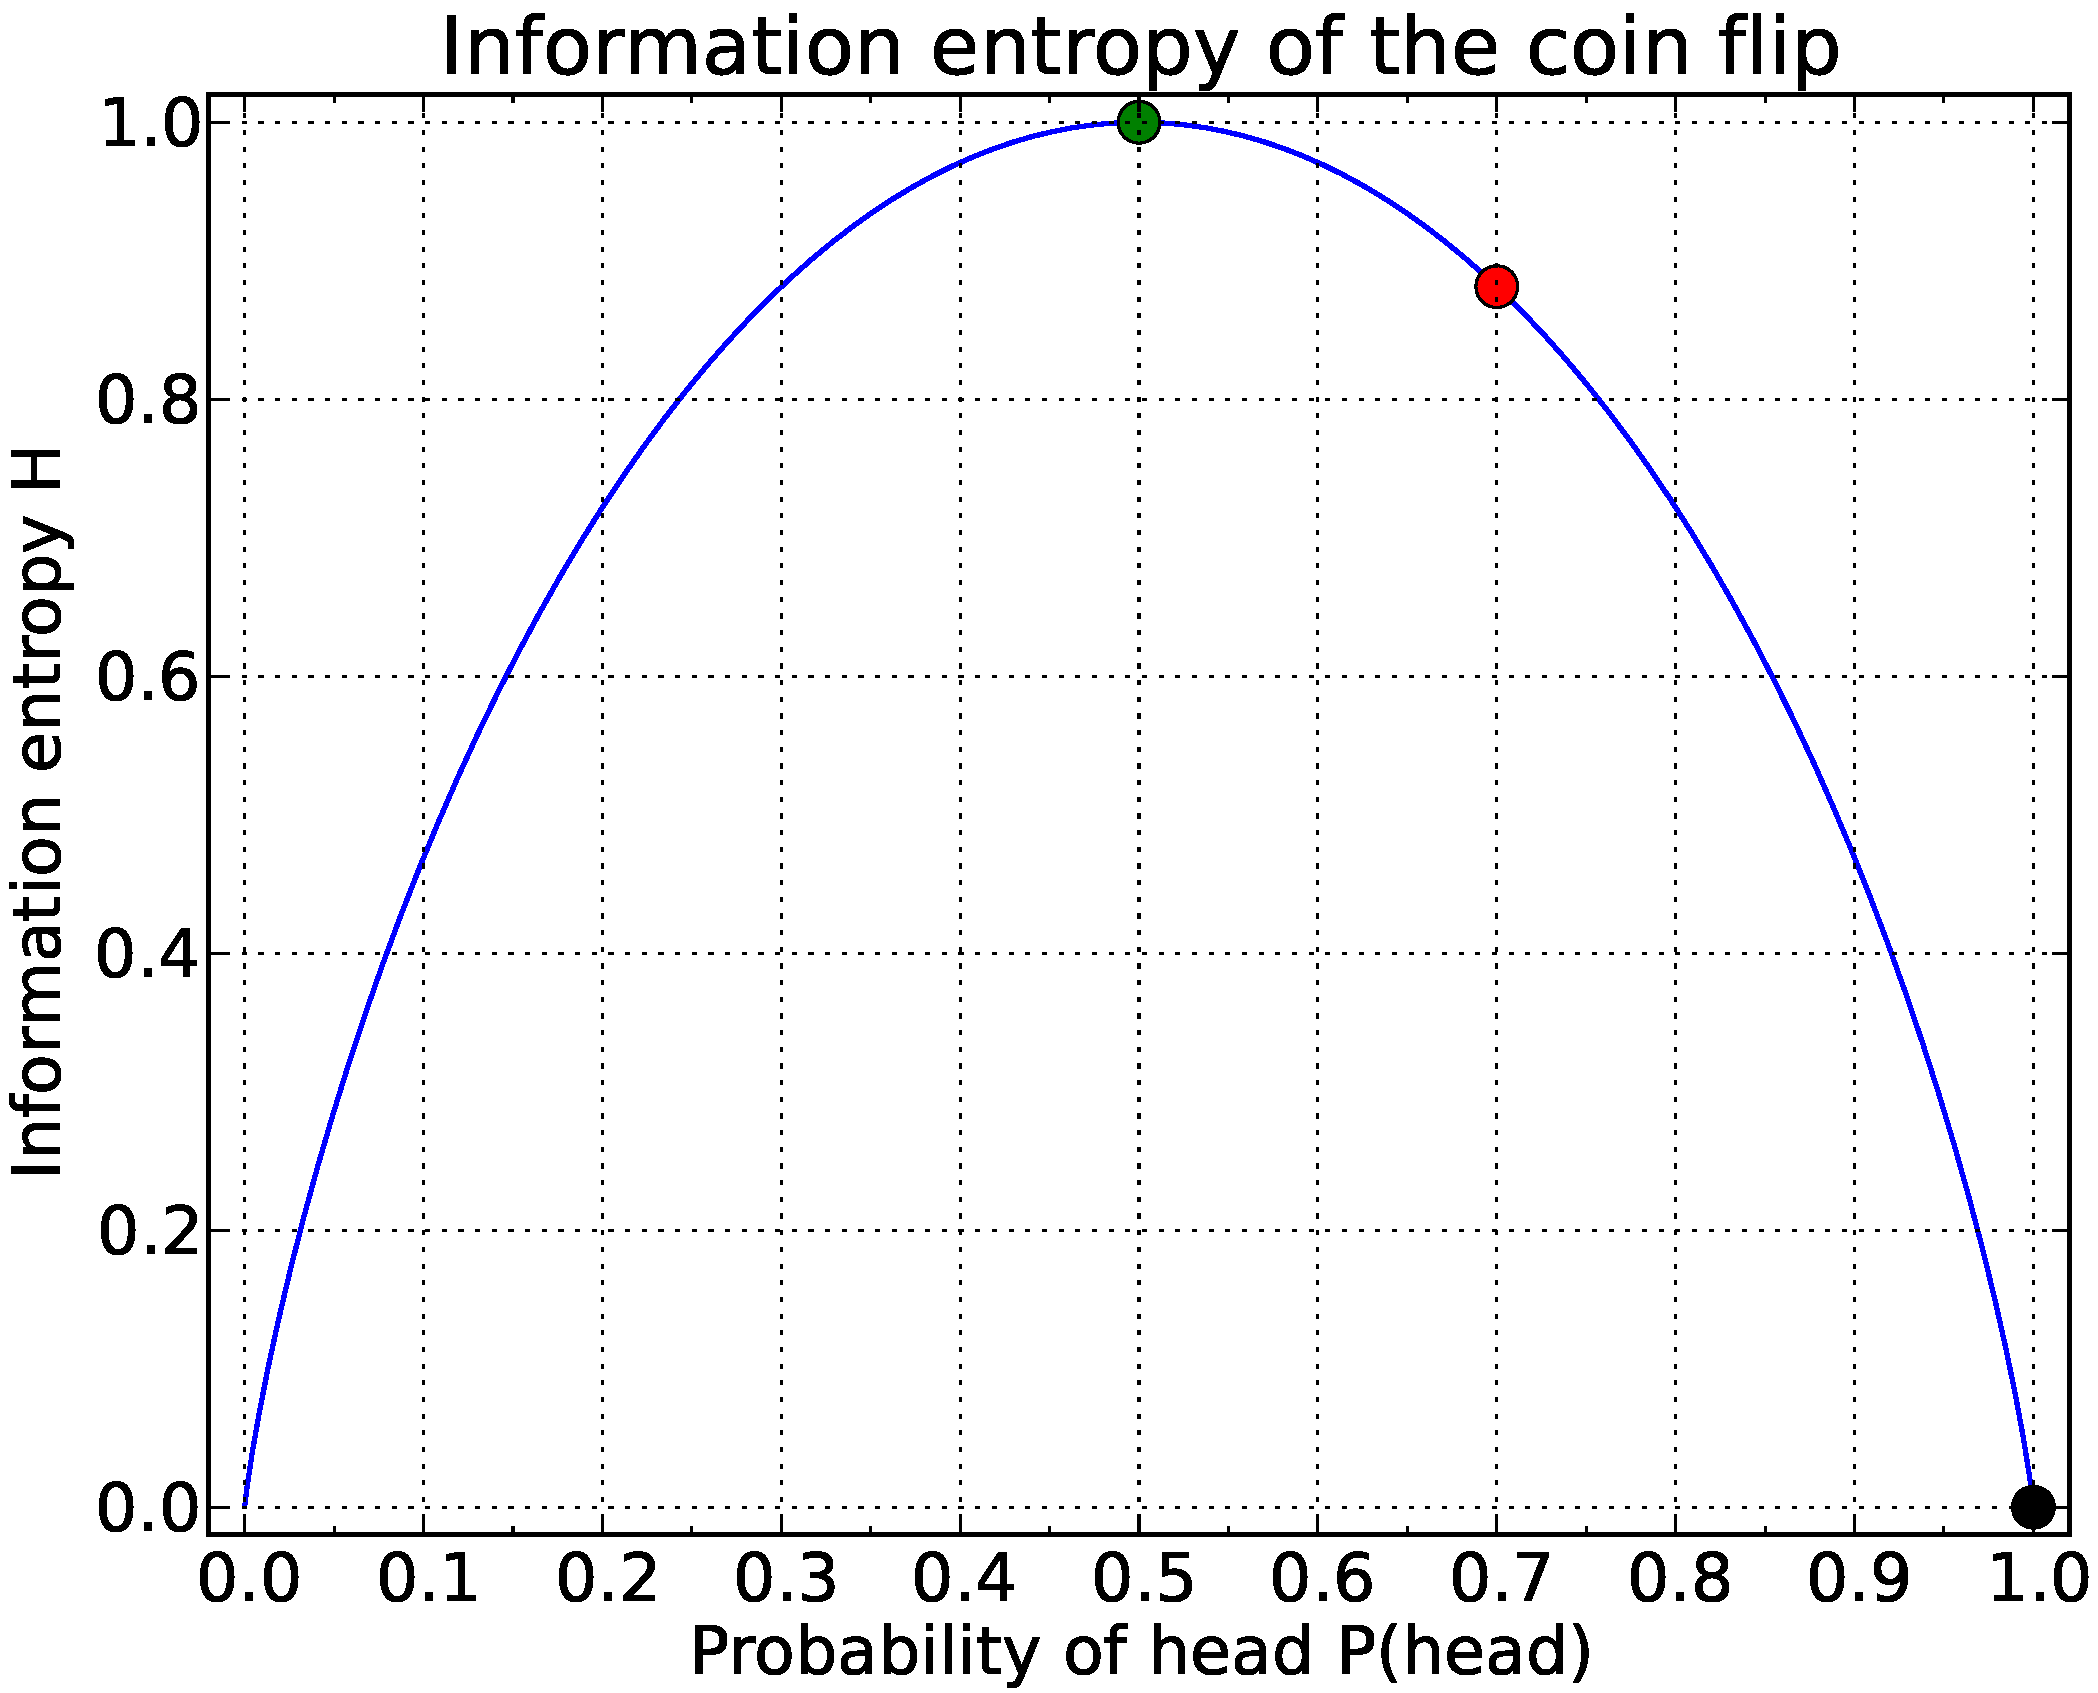 Event probability table